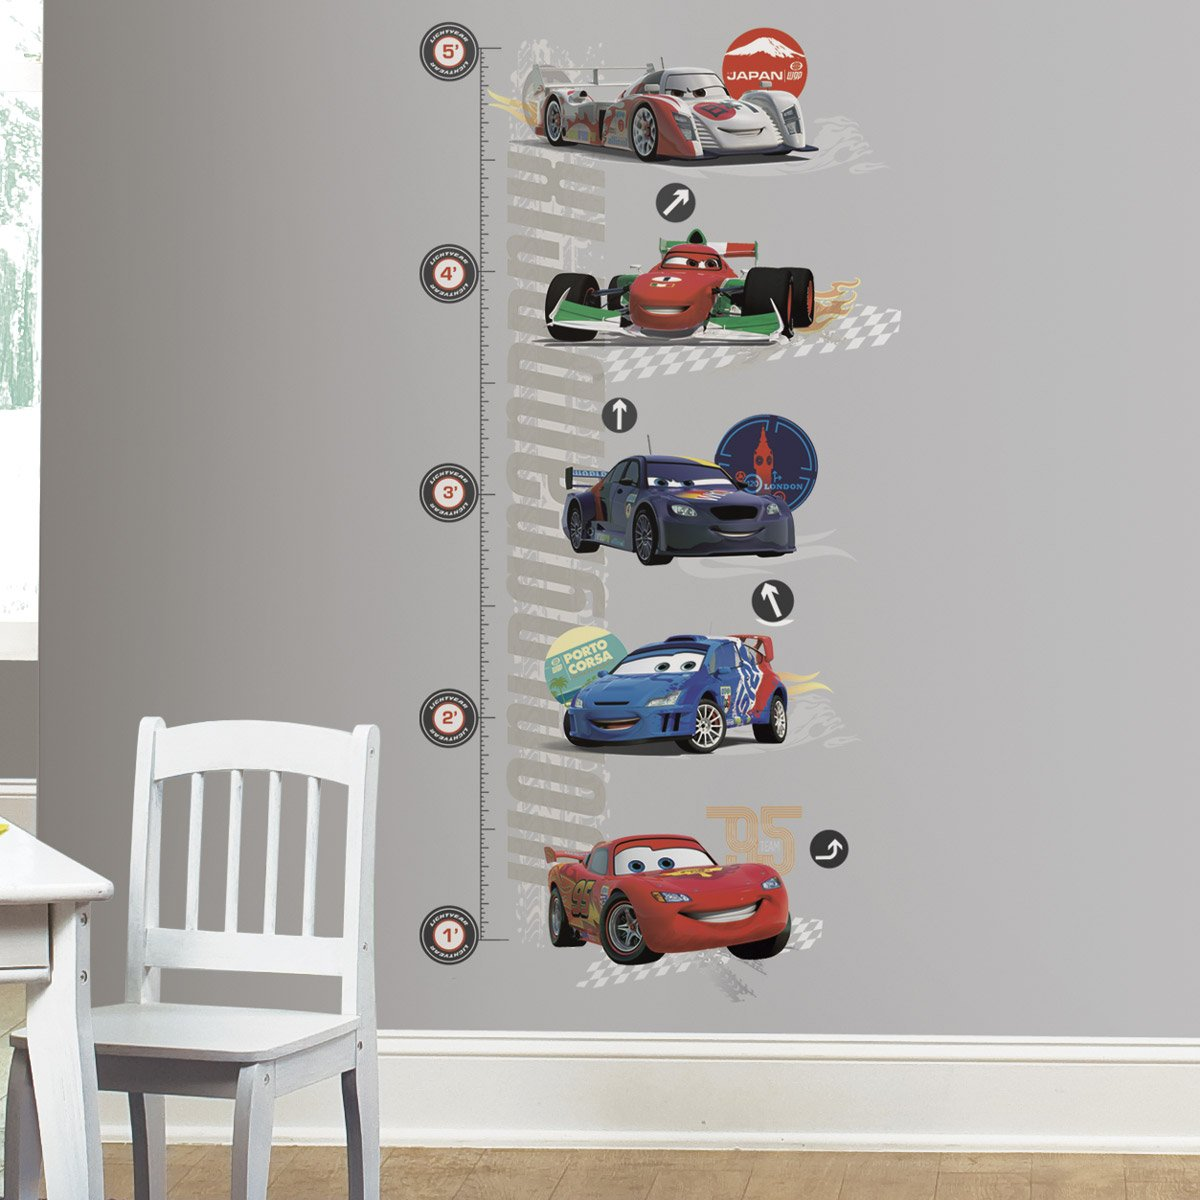 sticker toise lightning mcqueen cars 2. Black Bedroom Furniture Sets. Home Design Ideas